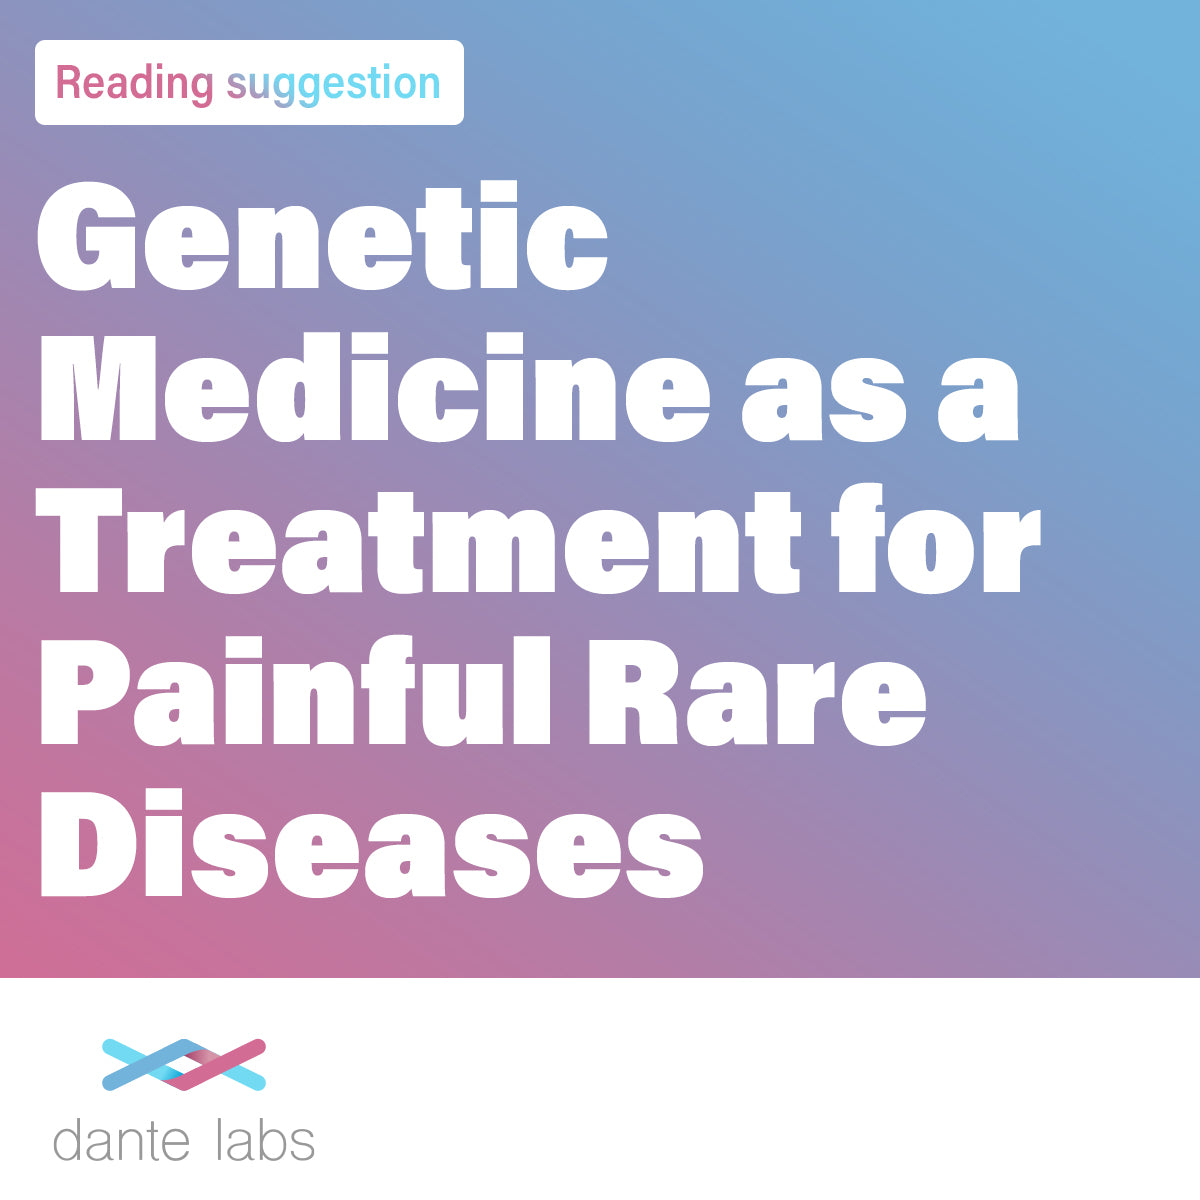 Genetic Medicine as a Treatment for Painful Rare Diseases